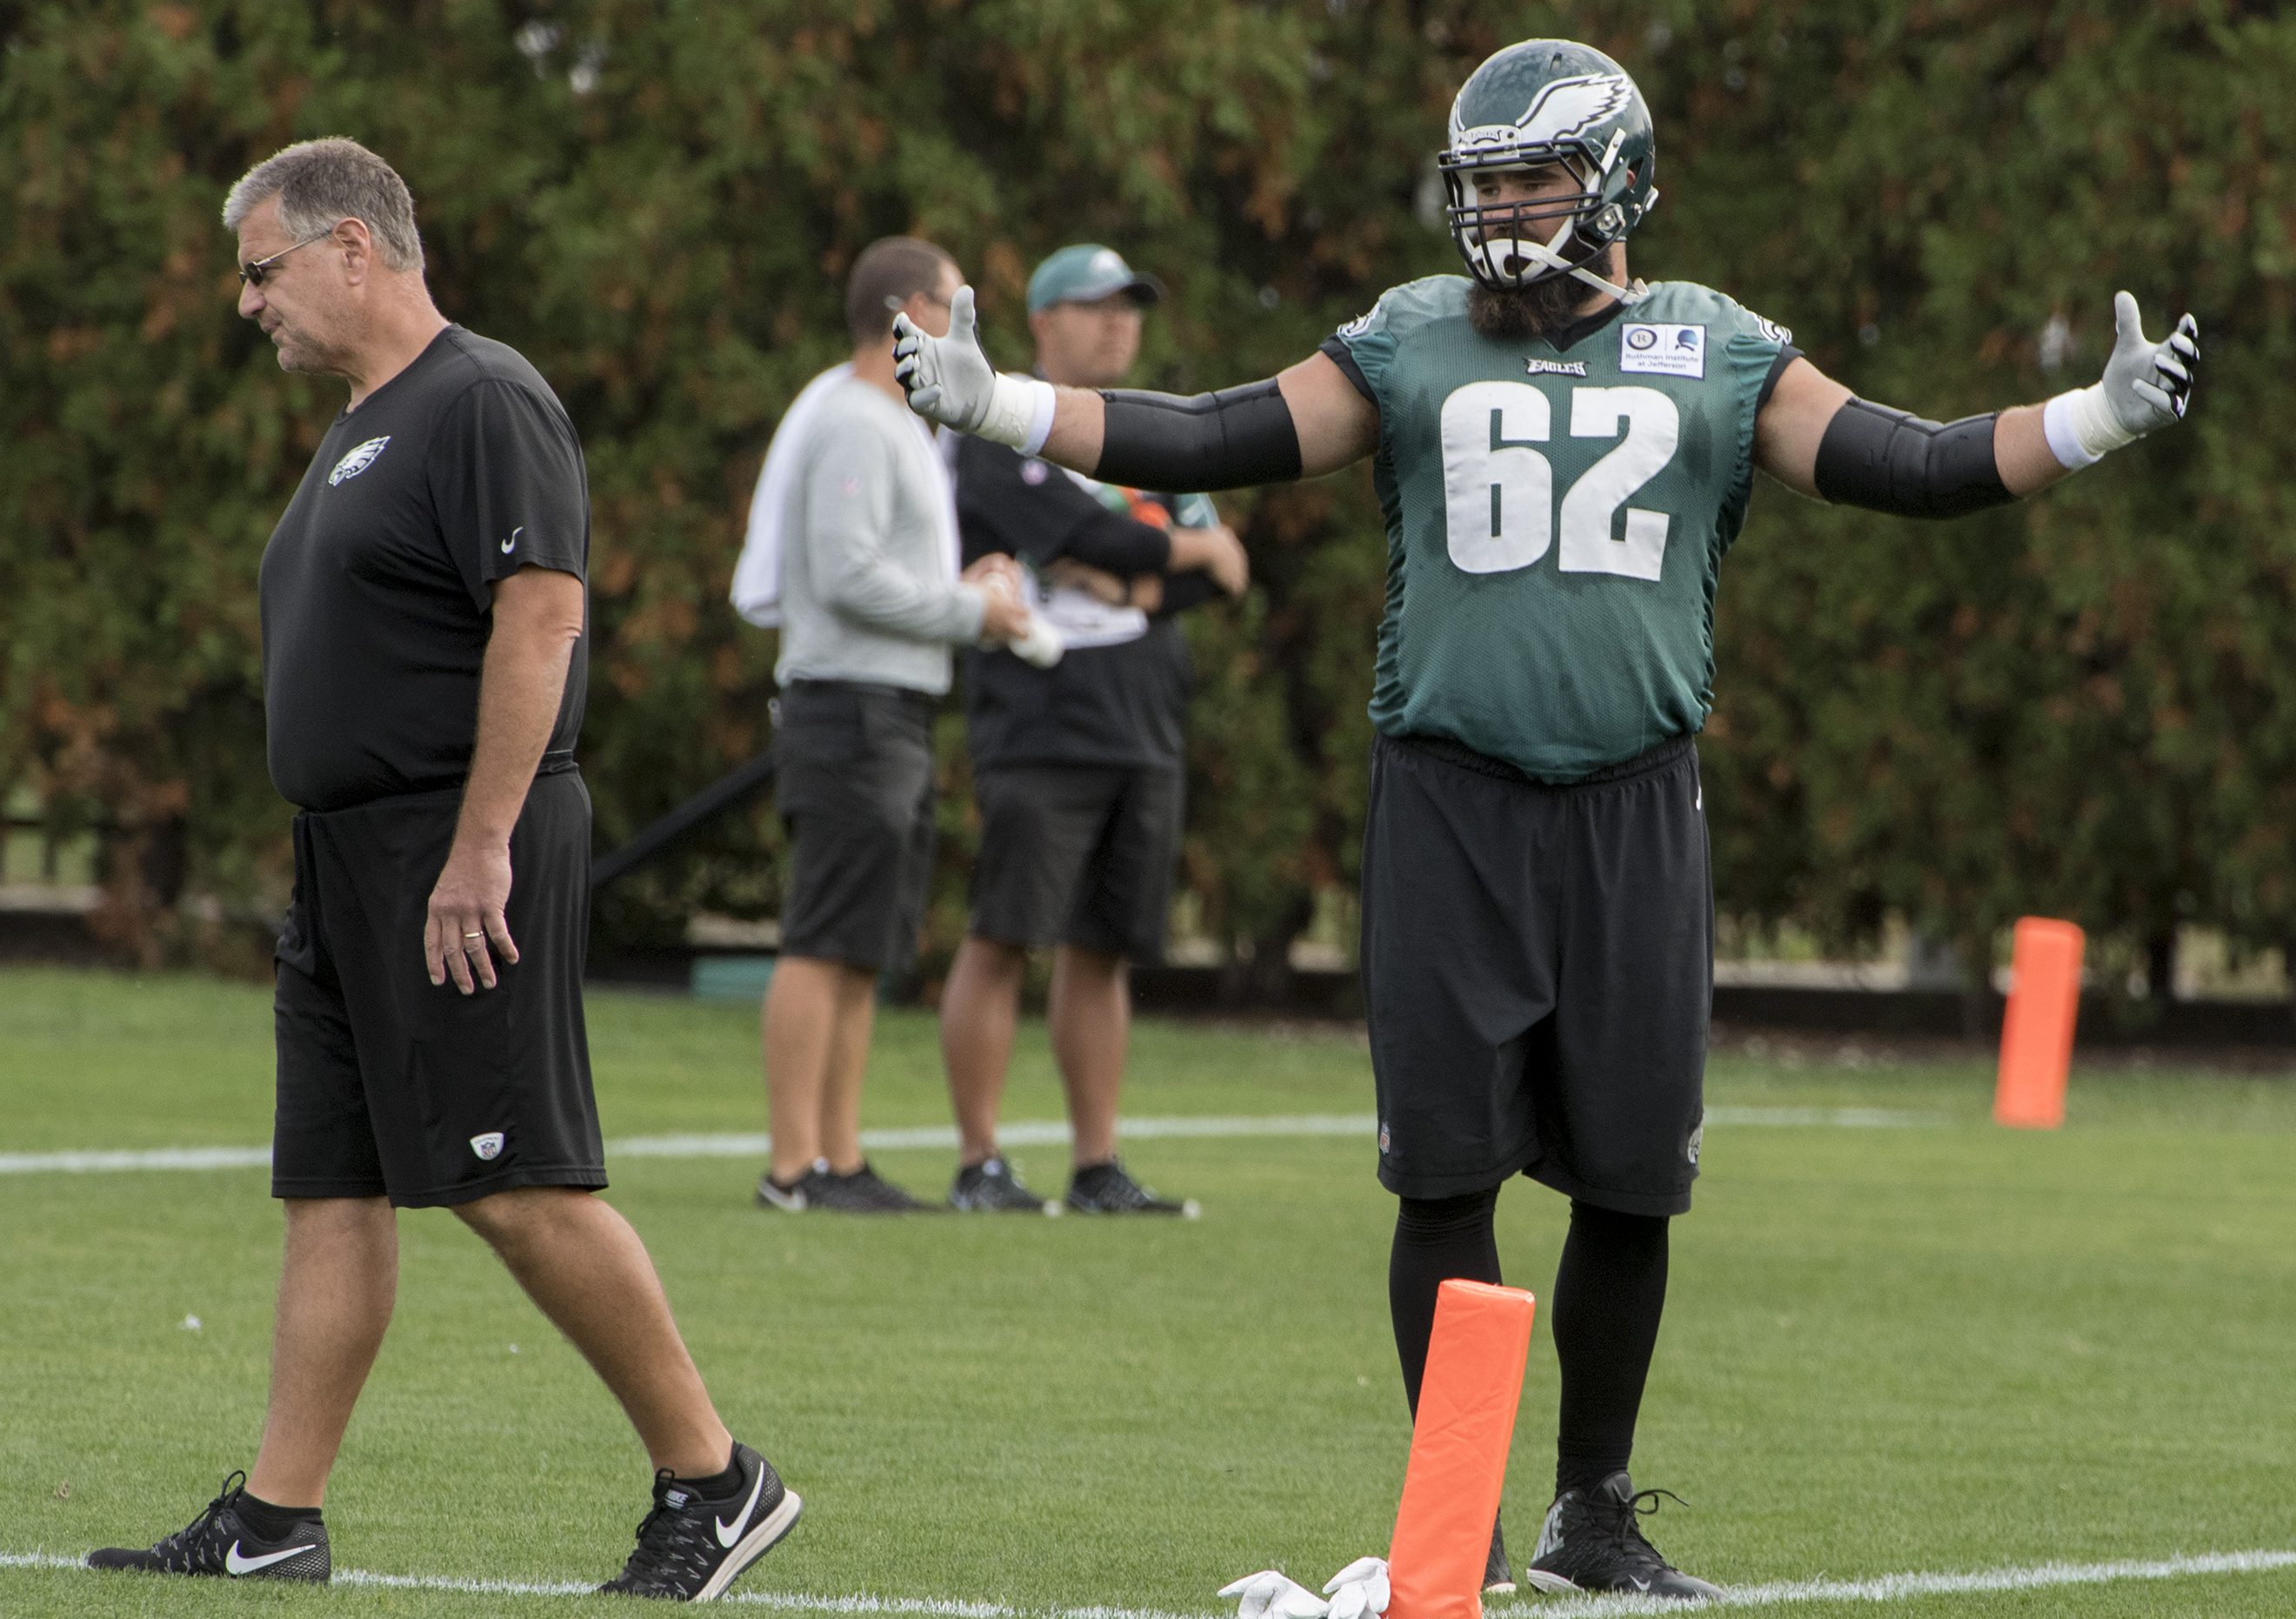 Eagles center Jason Kelce reacts as offensive-line coach Jeff Stoutland passes by during an October 2016 practice.